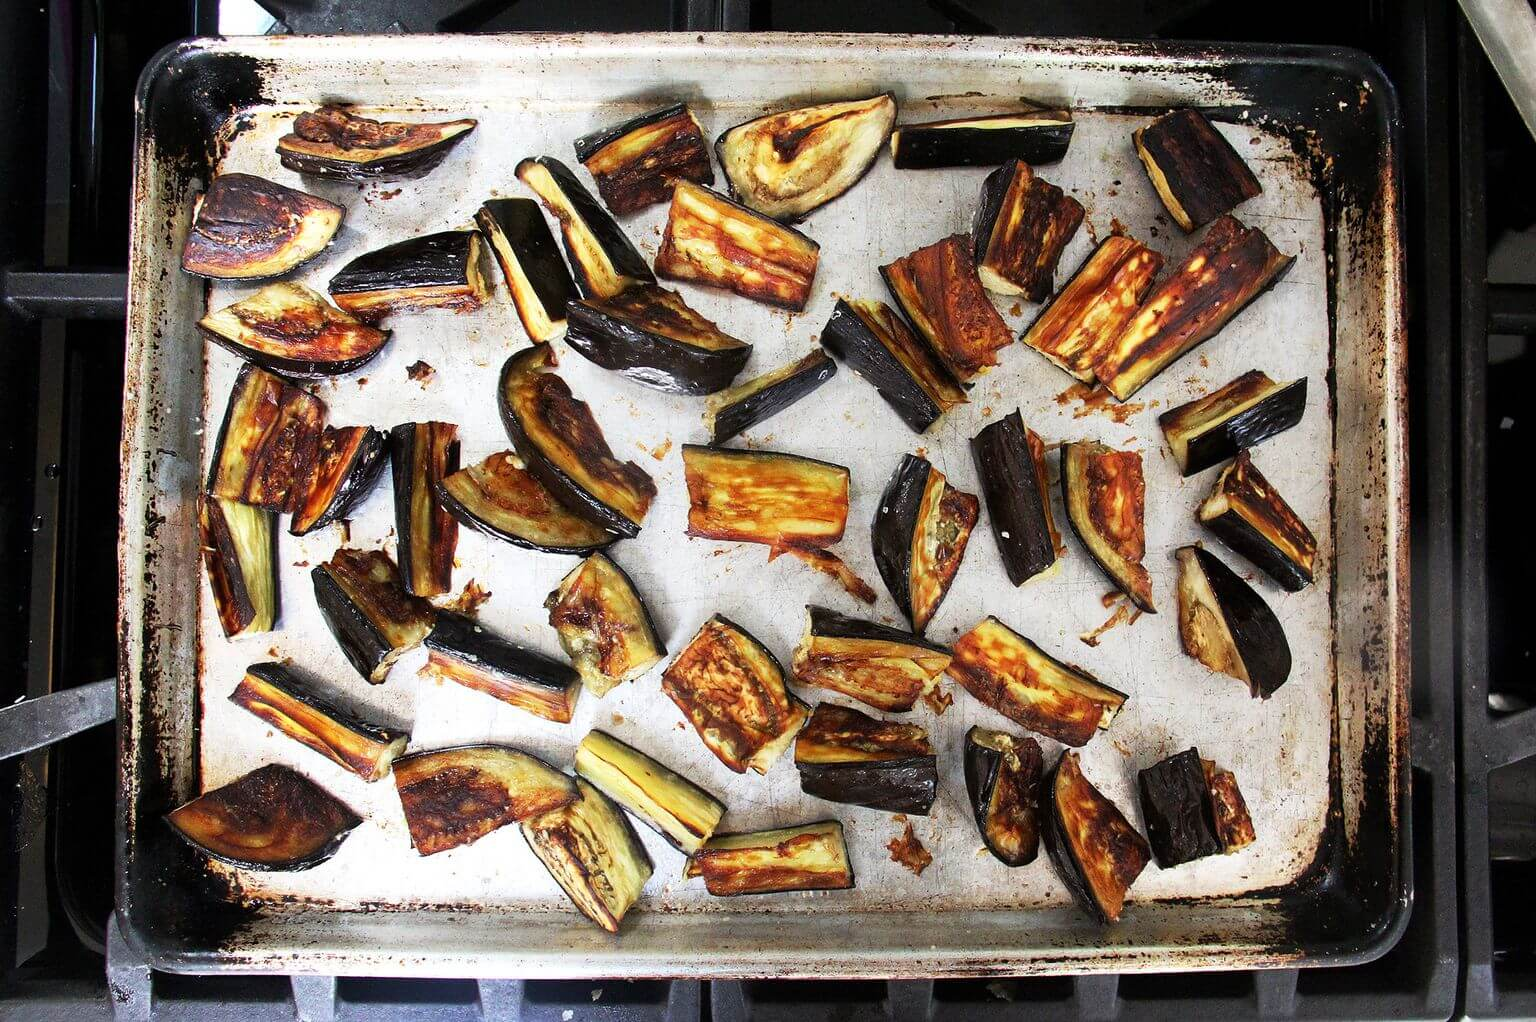 A sheet pan of roasted eggplant.